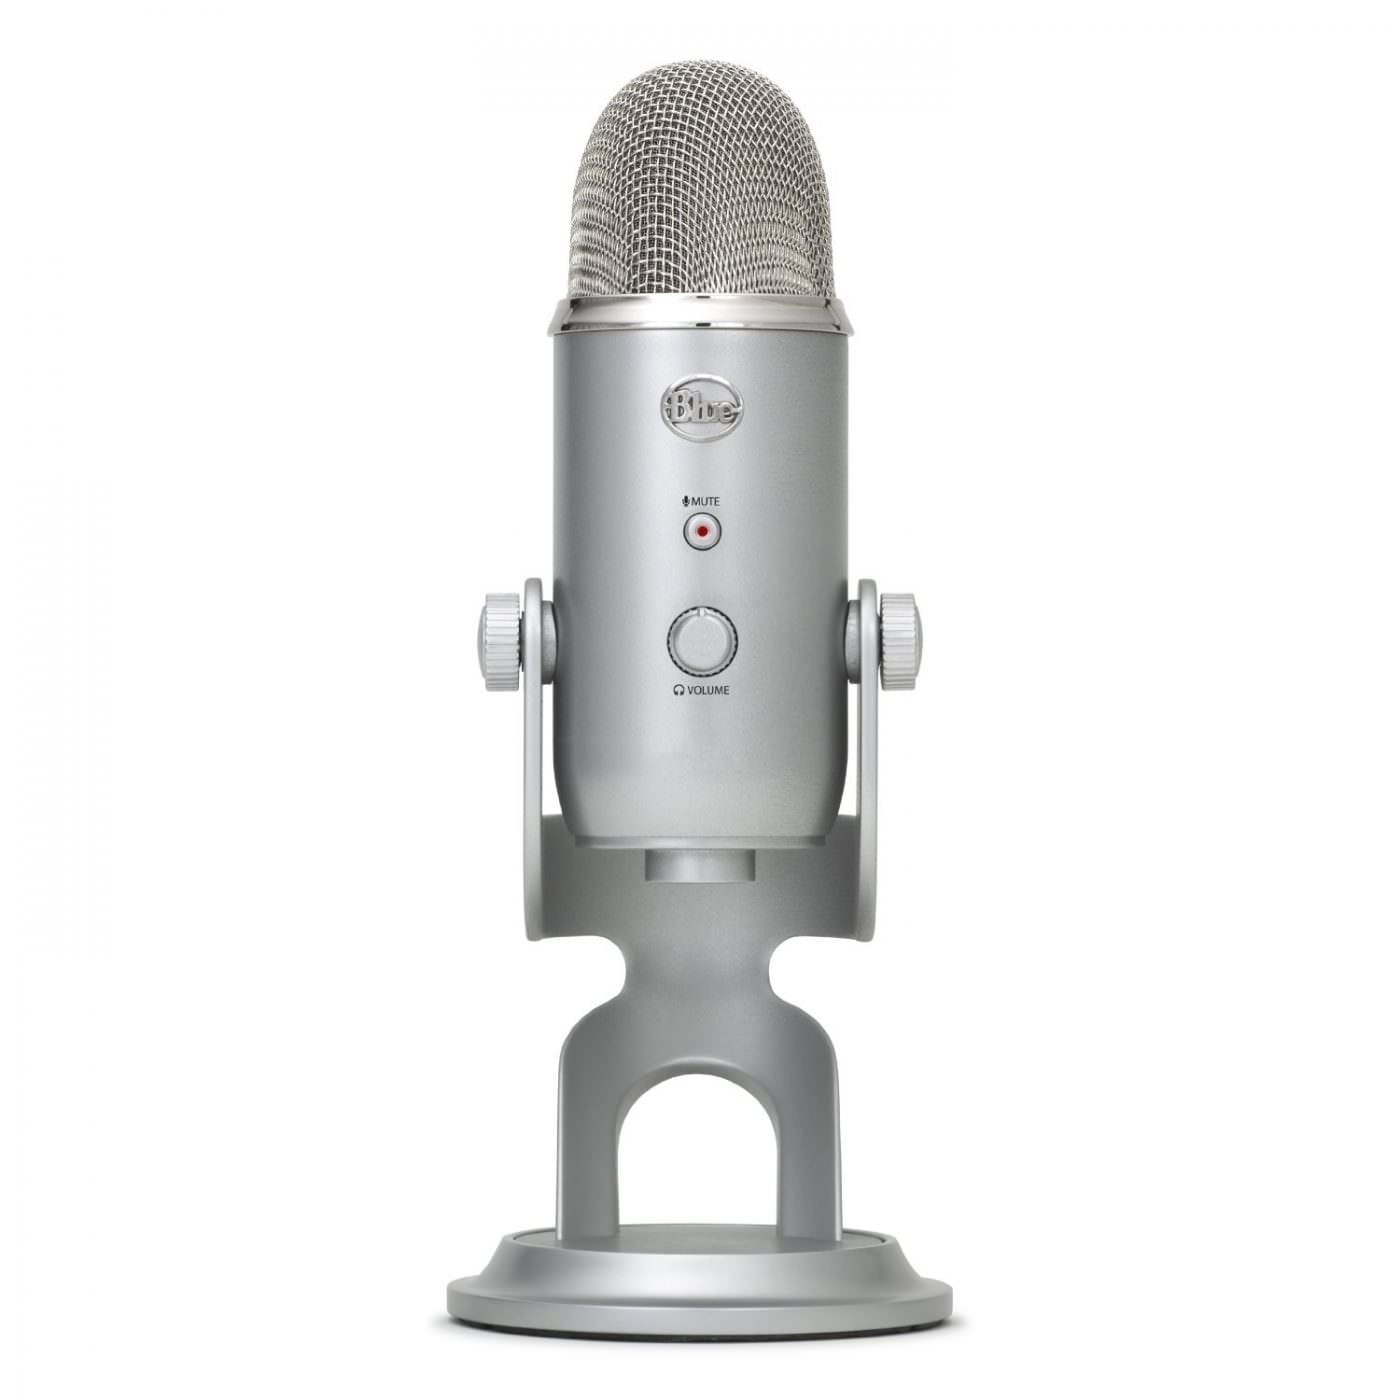 Mp25 Club Mixer besides 93932926 also The Best Podcasting Microphones On The Market together with Creative Xfi Surround 51 P1 in addition 117242 Blue Yeti Troubleshooting. on usb sound card for recording